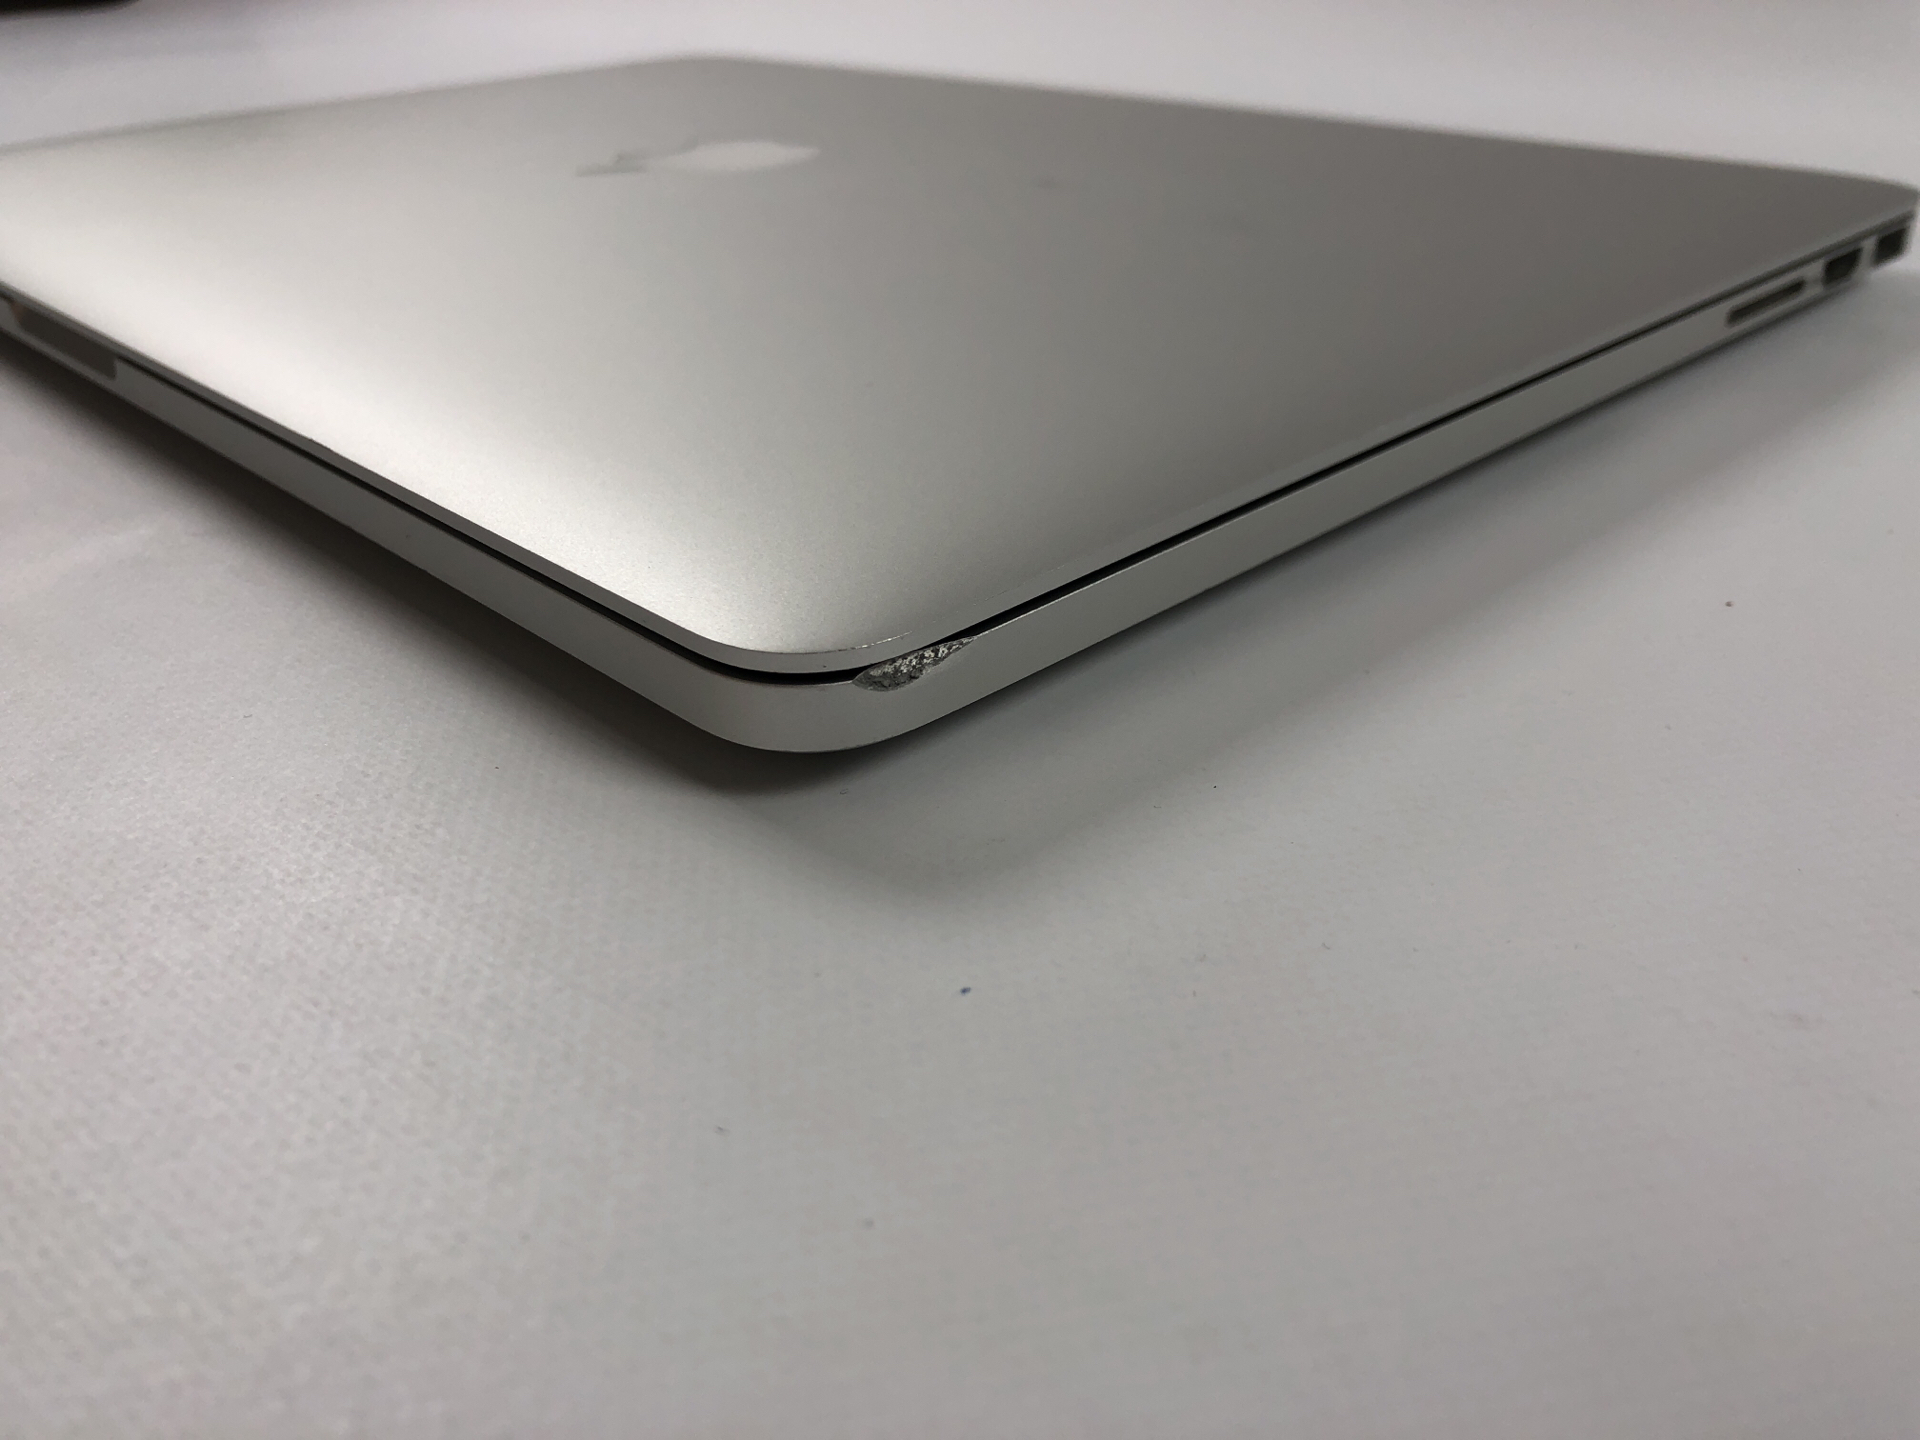 "MacBook Pro Retina 15"" Mid 2015 (Intel Quad-Core i7 2.2 GHz 16 GB RAM 256 GB SSD), Intel Quad-Core i7 2.2 GHz, 16 GB RAM, 256 GB SSD, Bild 5"